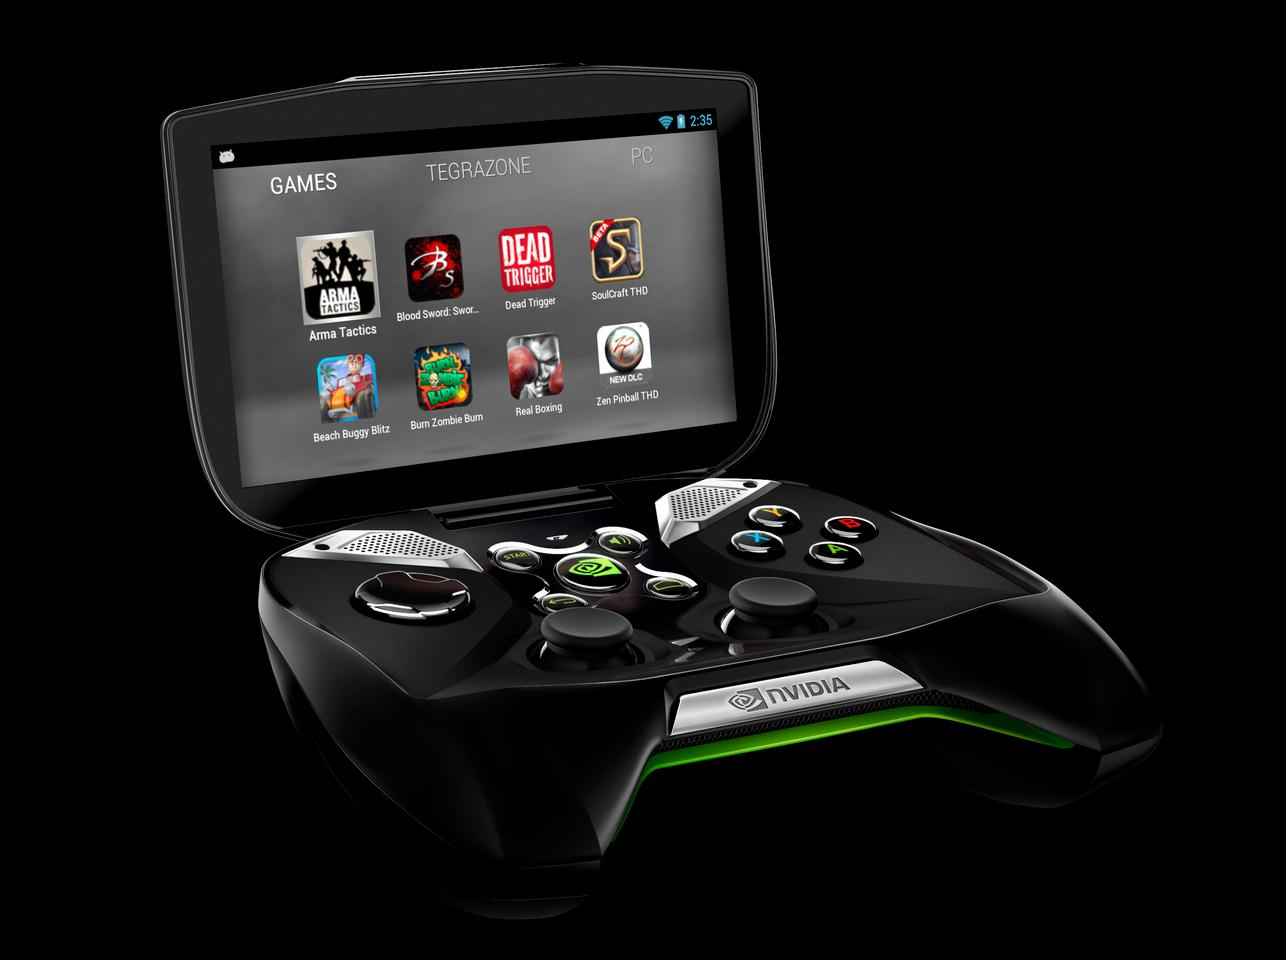 Could Project Shield compete with Apple, Nintendo, and other Android devices?